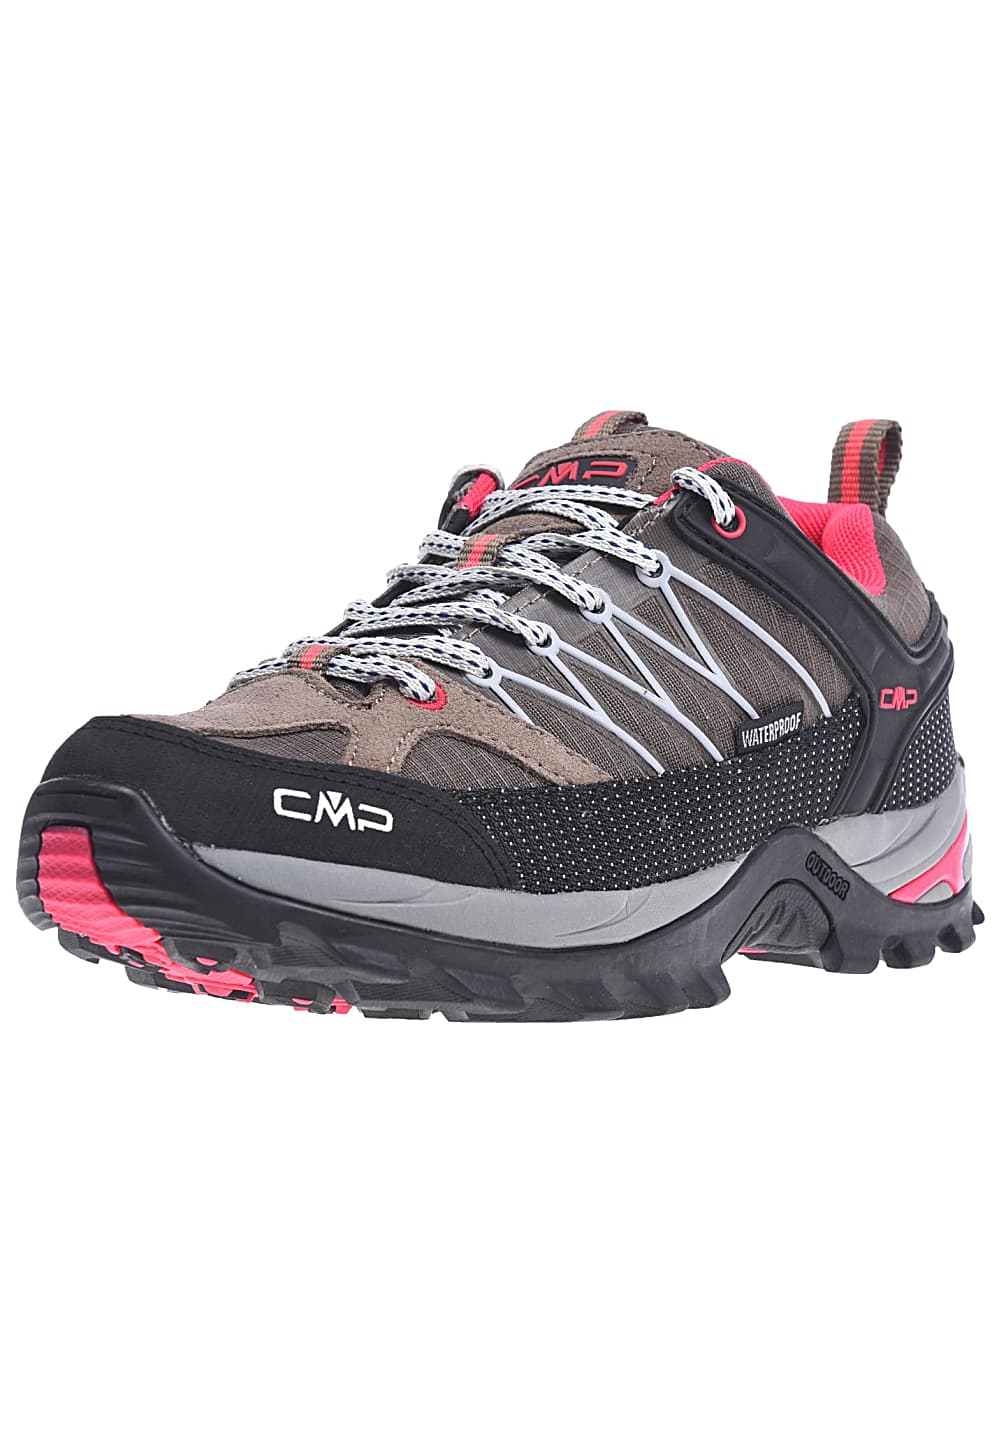 CMP Rigel Low WP - Scarpe da trekking per Donna - Marrone - Planet ... 92f6481cff1